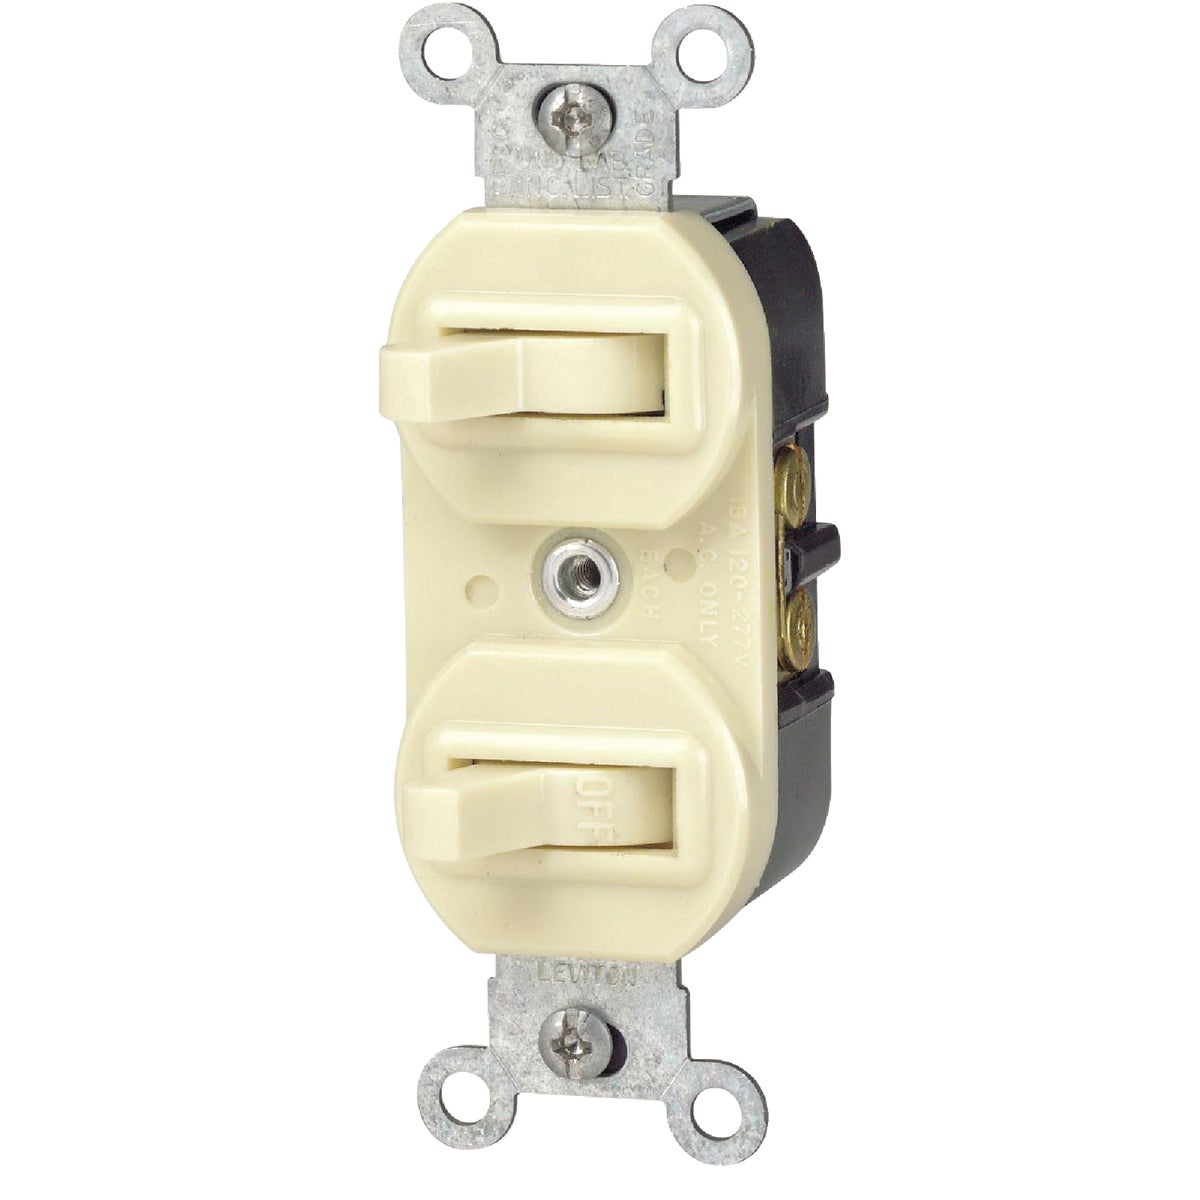 IVORY DUPLEX SWITCH - R61-5241-IS by Leviton Mfg Co